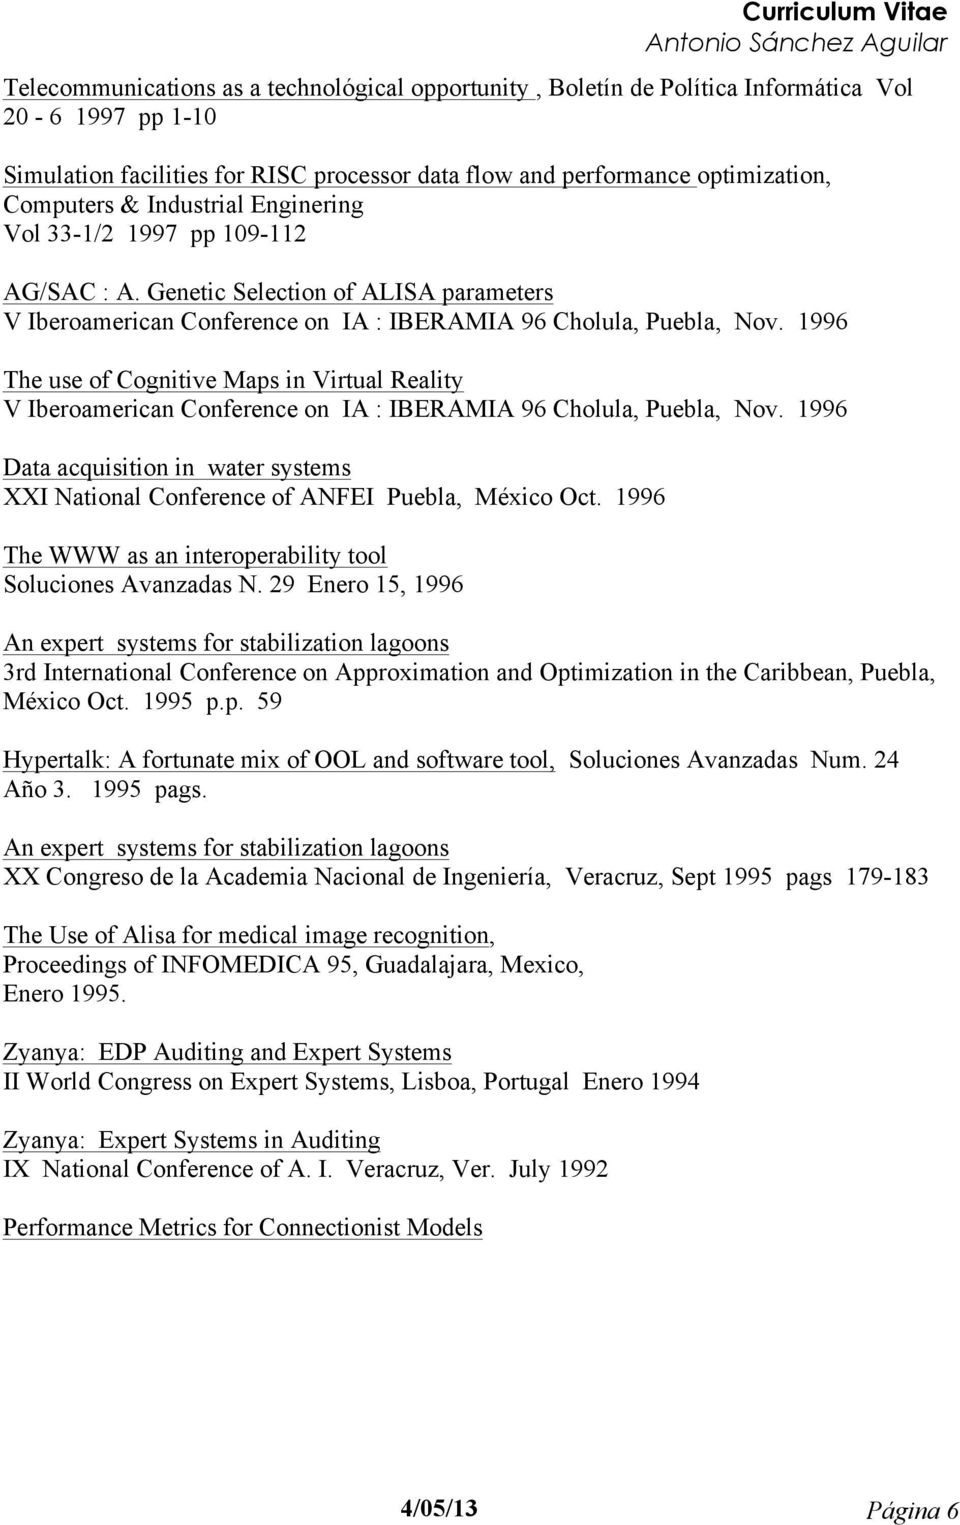 1996 The use of Cognitive Maps in Virtual Reality V Iberoamerican Conference on IA : IBERAMIA 96 Cholula, Puebla, Nov.